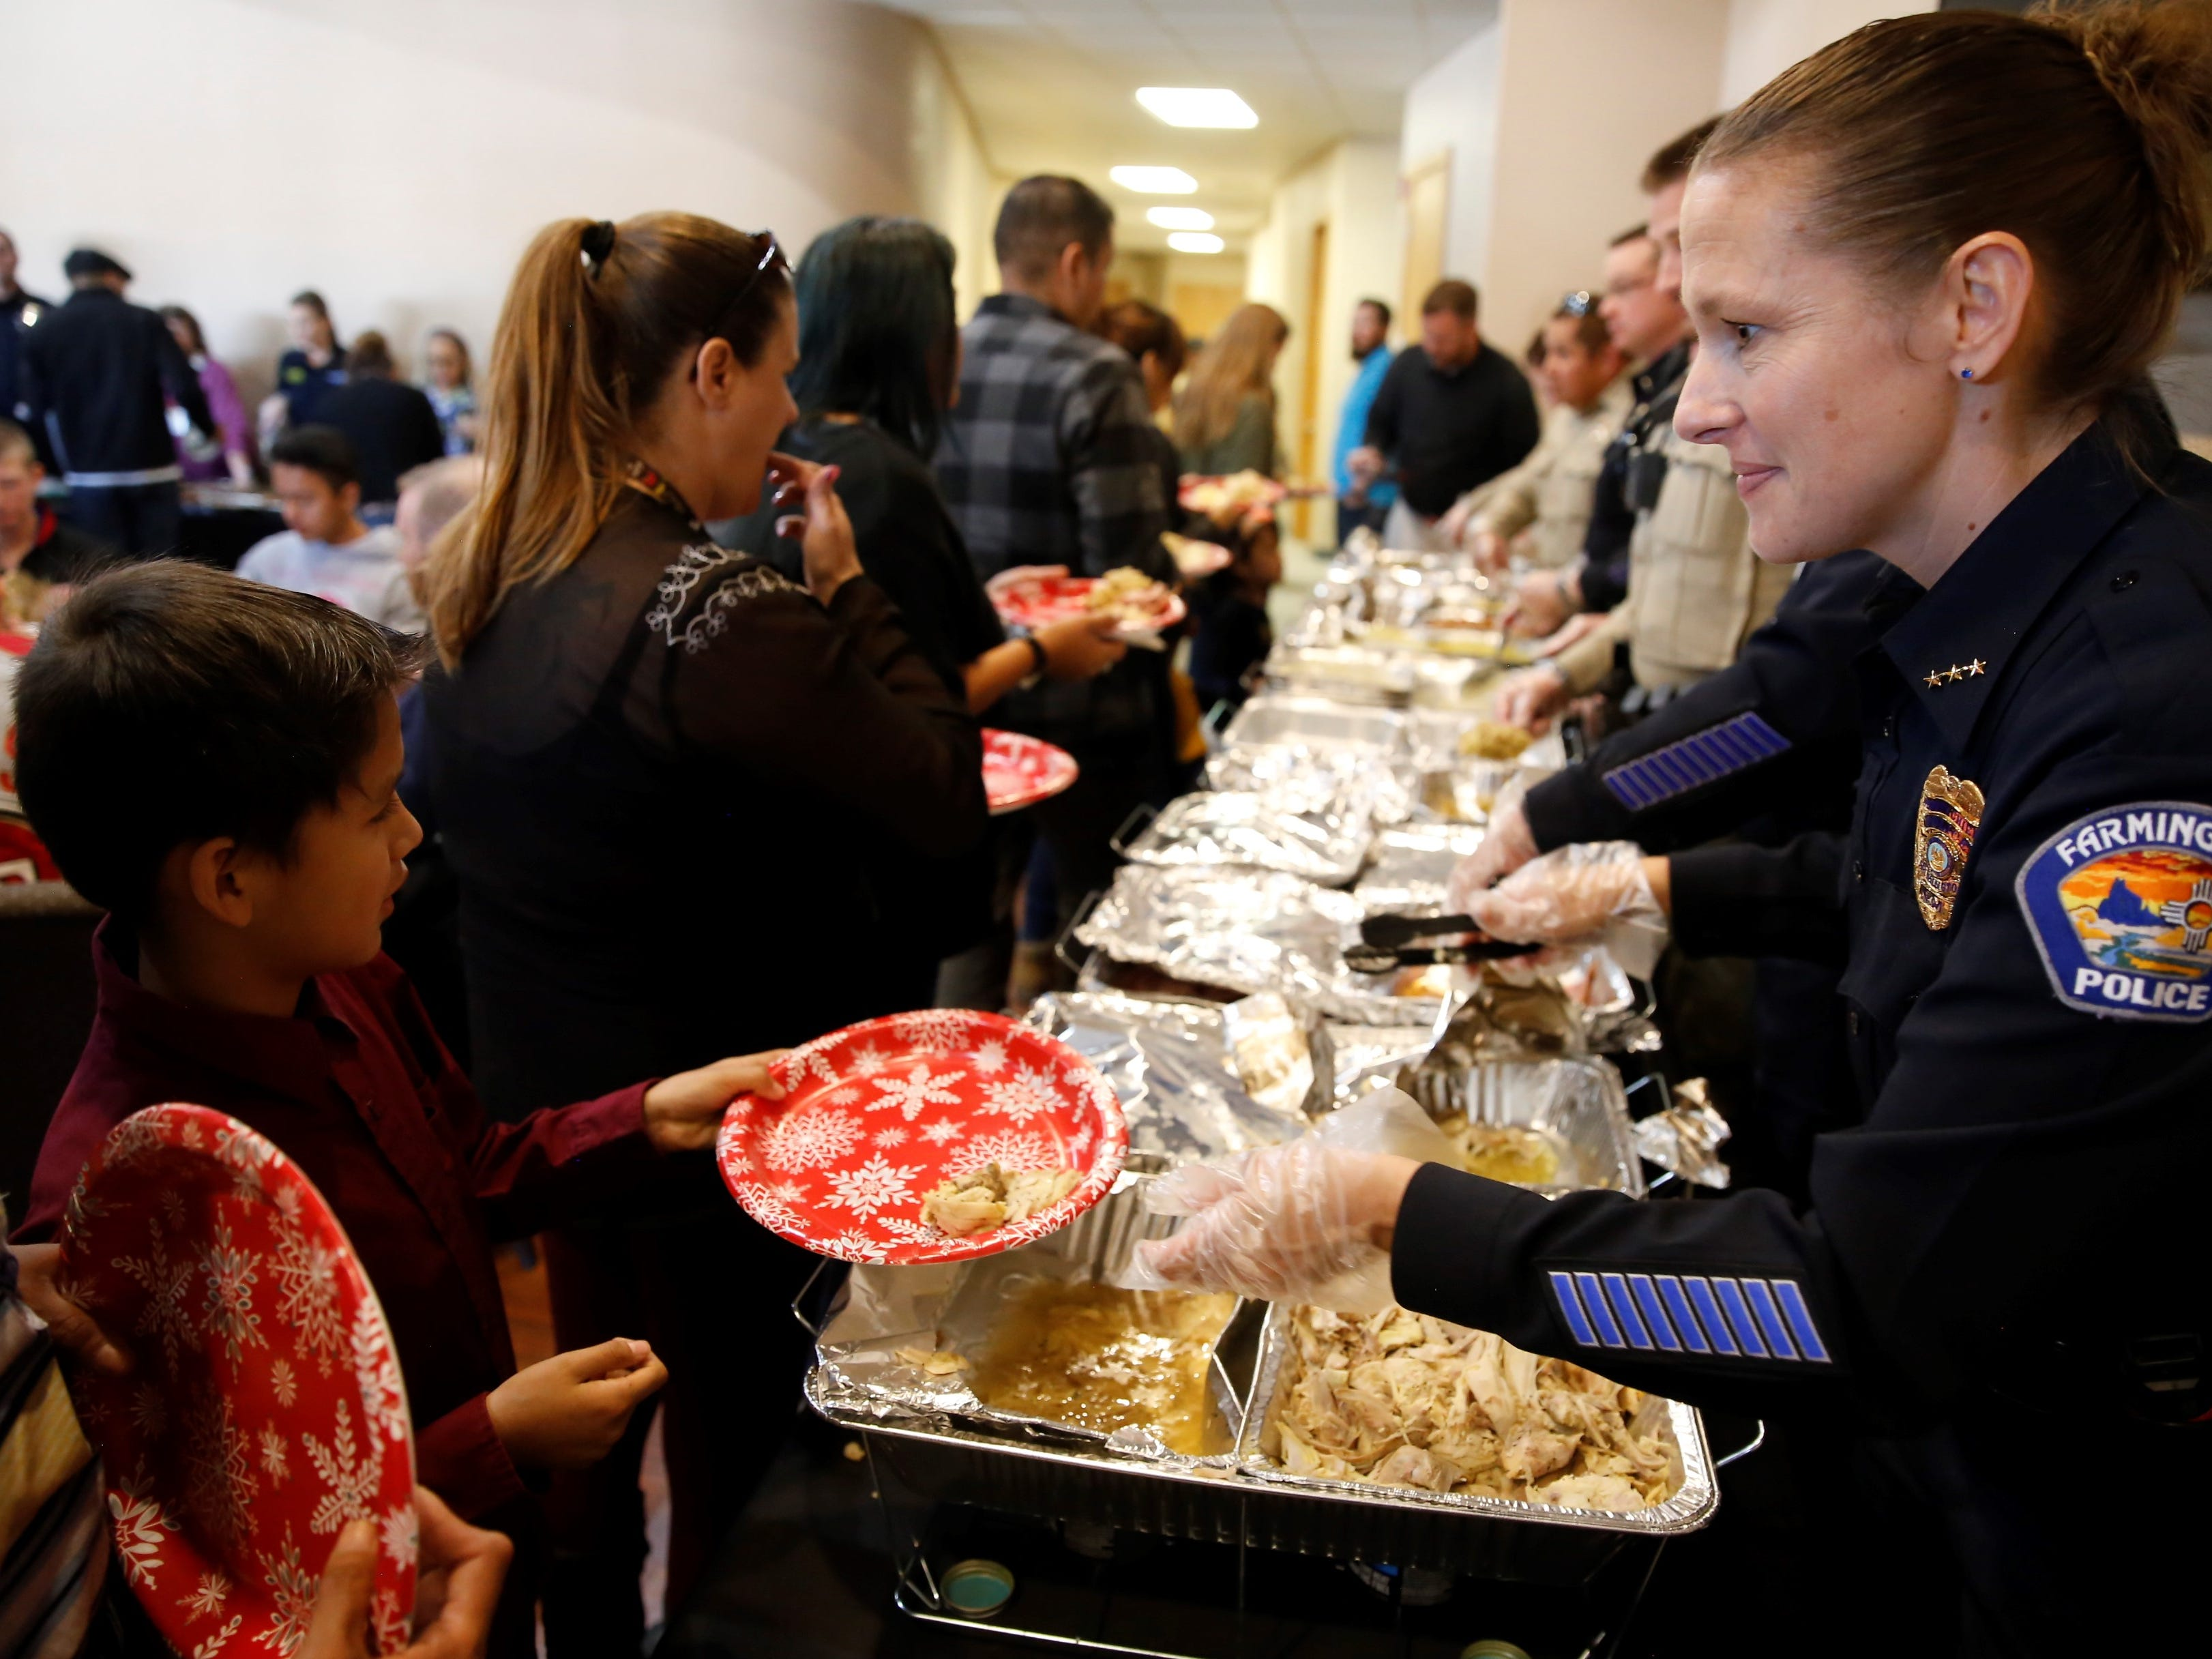 Farmington Police Department Deputy Chief Jessica Tyler, right, serves turkey to Malachi Lopez as part of a Thanksgiving meal Tuesday afternoon at Oasis Church in Farmington. The San Juan County Juvenile Services program, Desert View Family Counseling and Cottonwood Clinical Services hosted the meal.